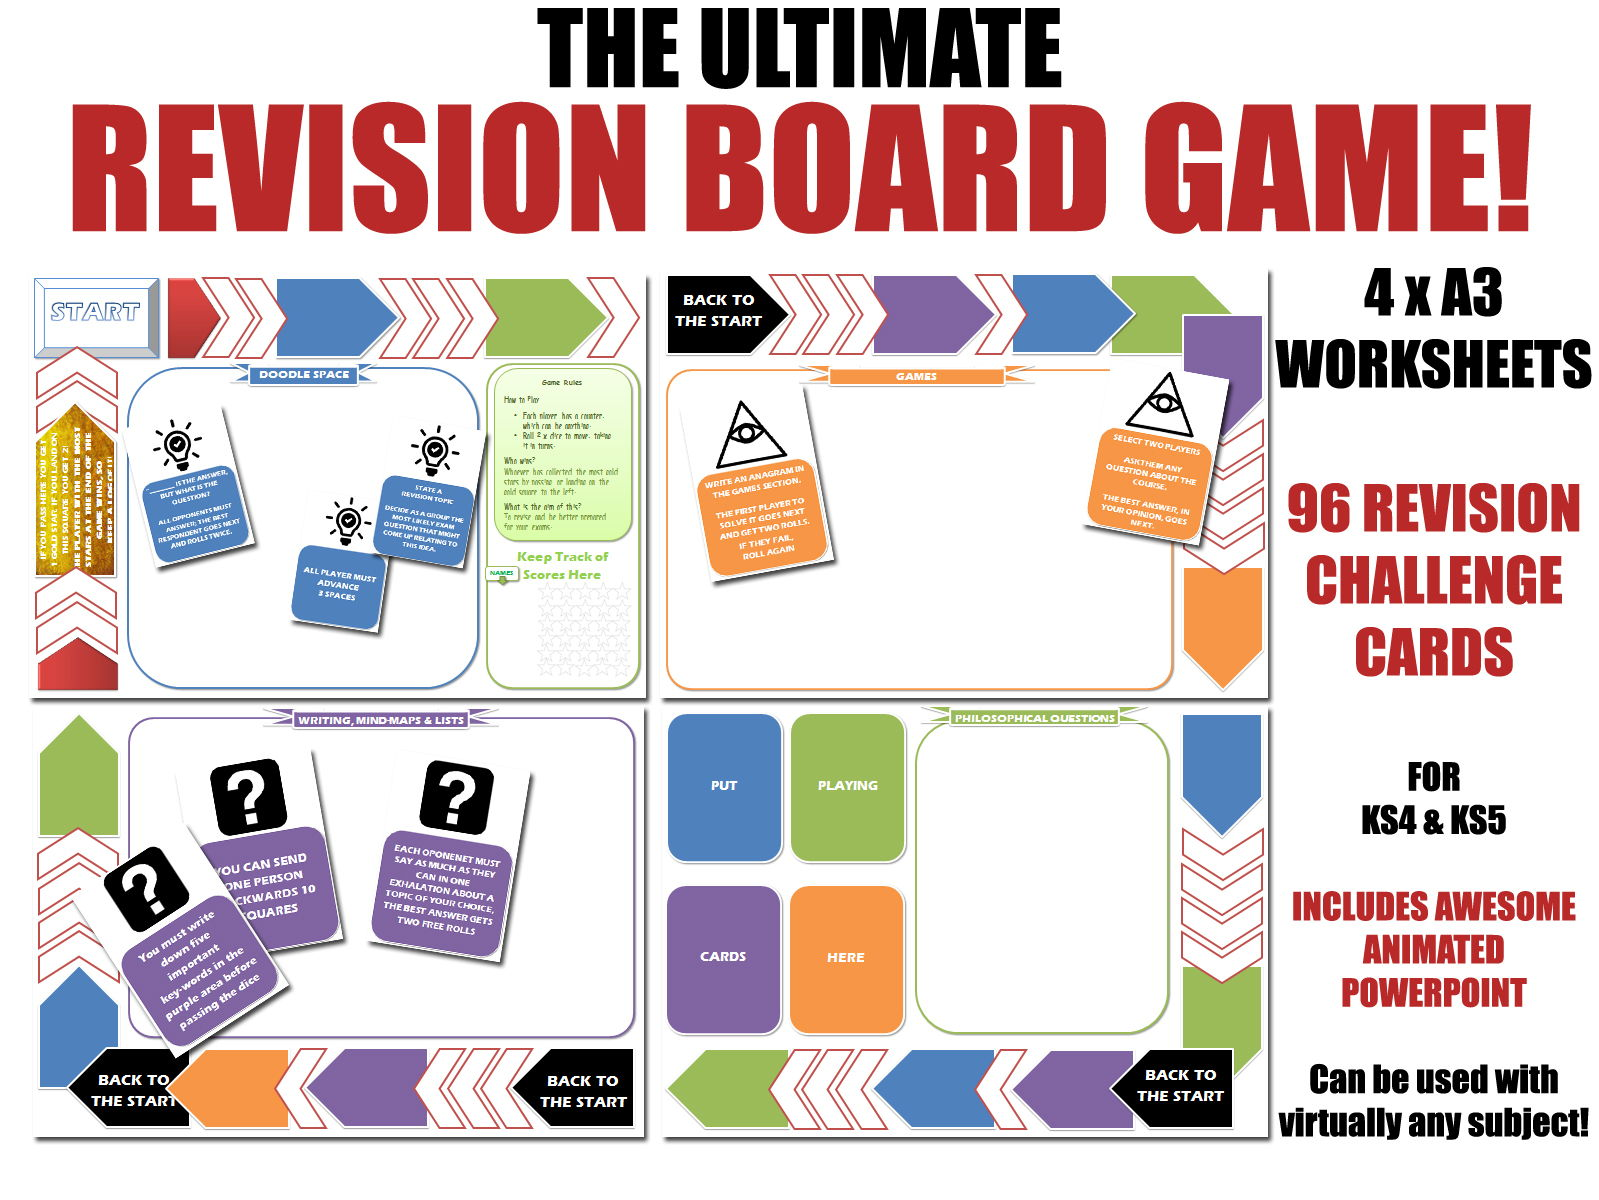 Revision Board Game for Art & History of Art (KS4 & KS5)